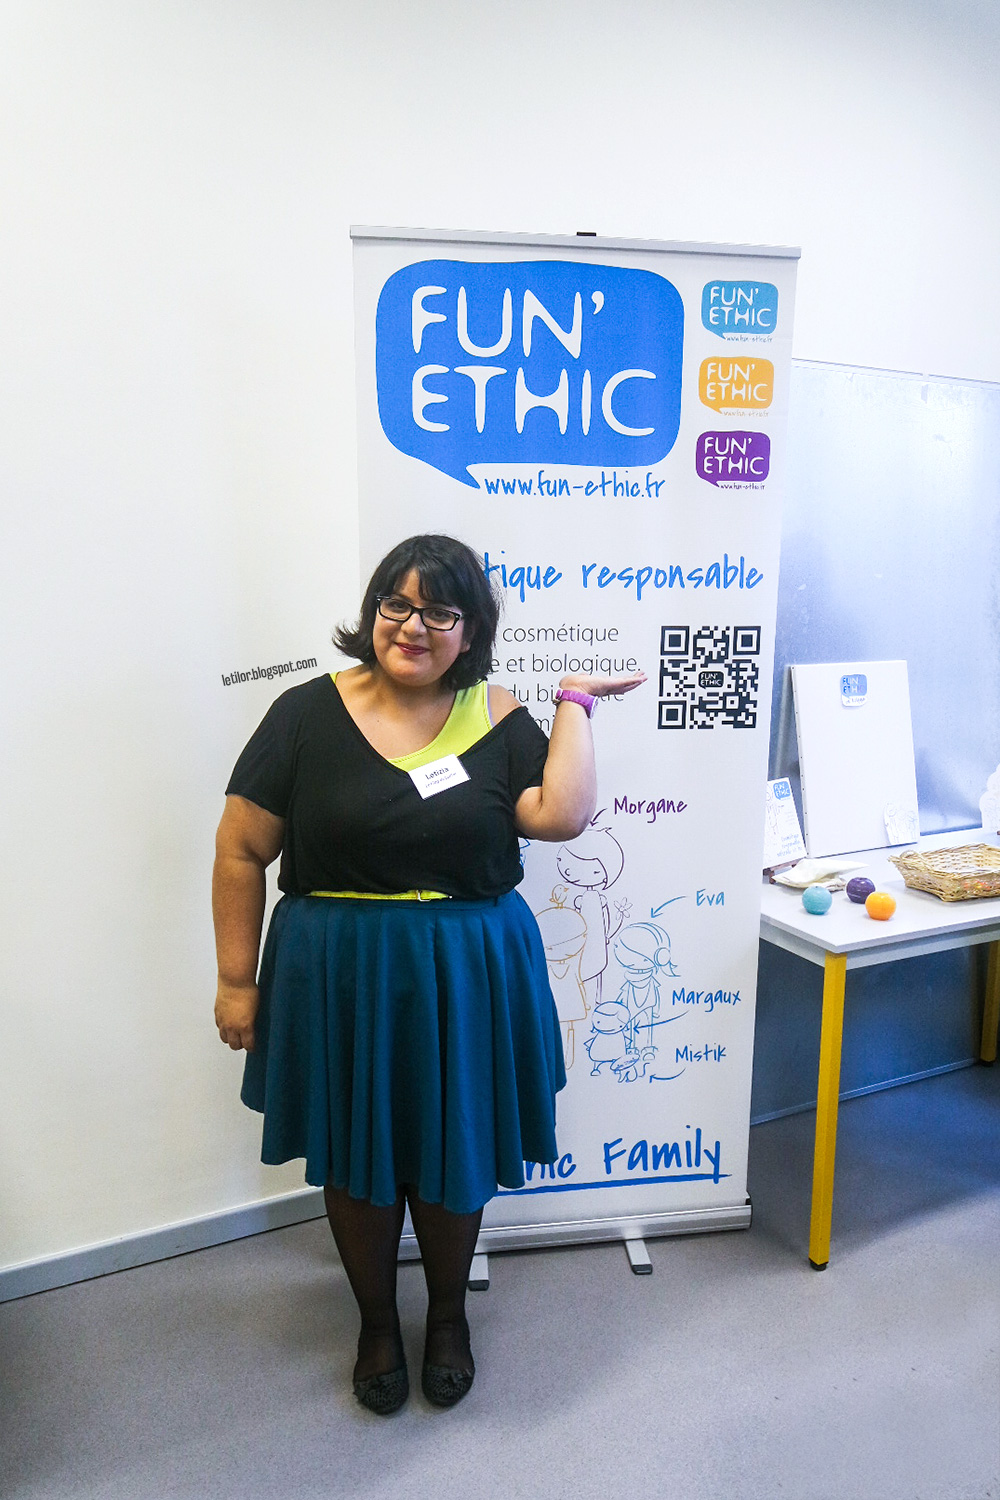 Fun'Ethic Letilor event blogueurs